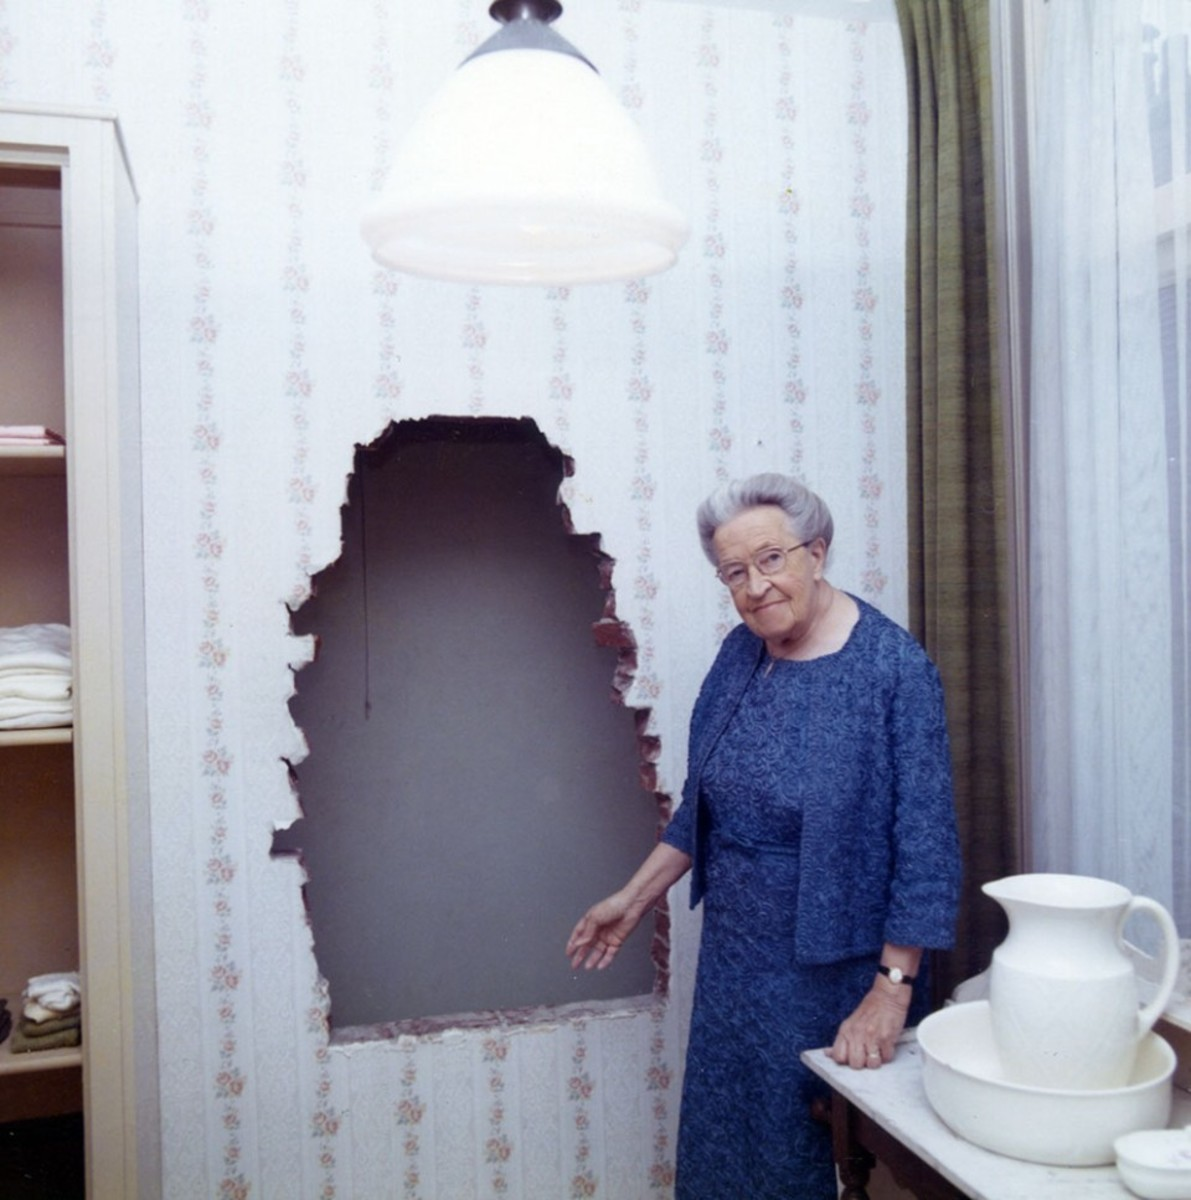 Corrie ten Boom Shown Pointing Out the Entrance to the Hiding Place Behind the Wall in What Had Been Her Bedroom